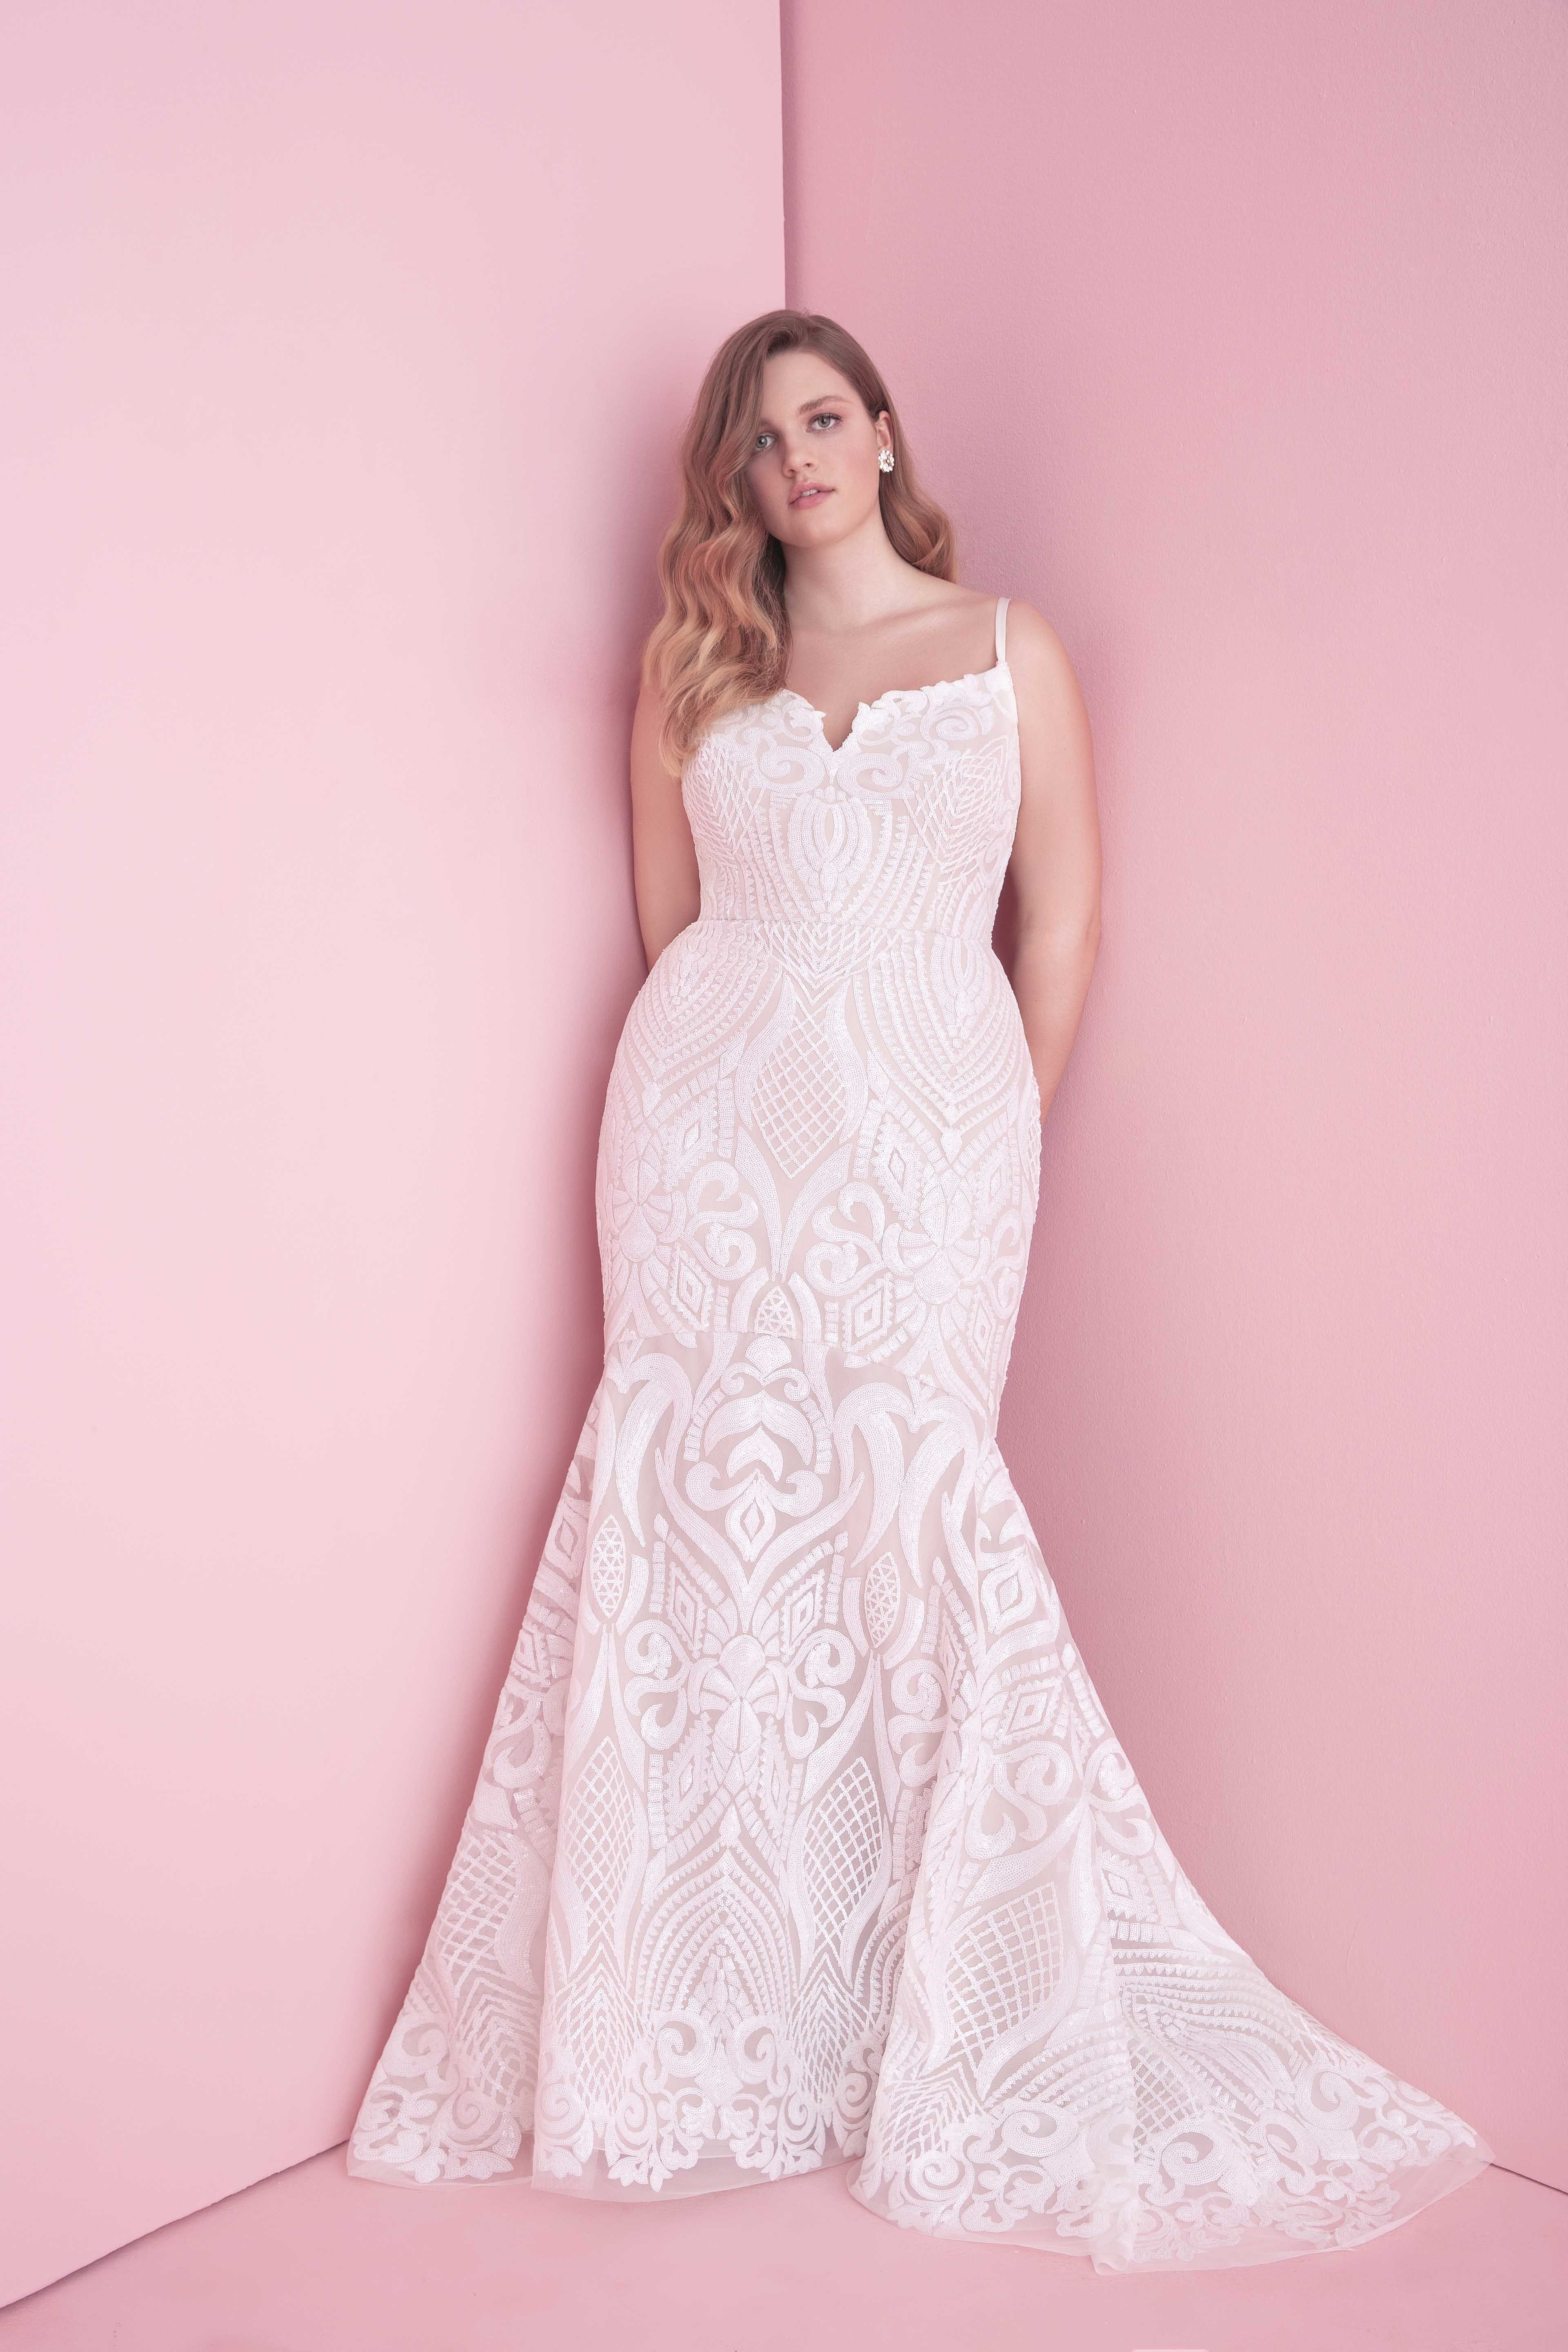 Plus size pink wedding dresses  Plus sized bride brides has you covered with some of the best